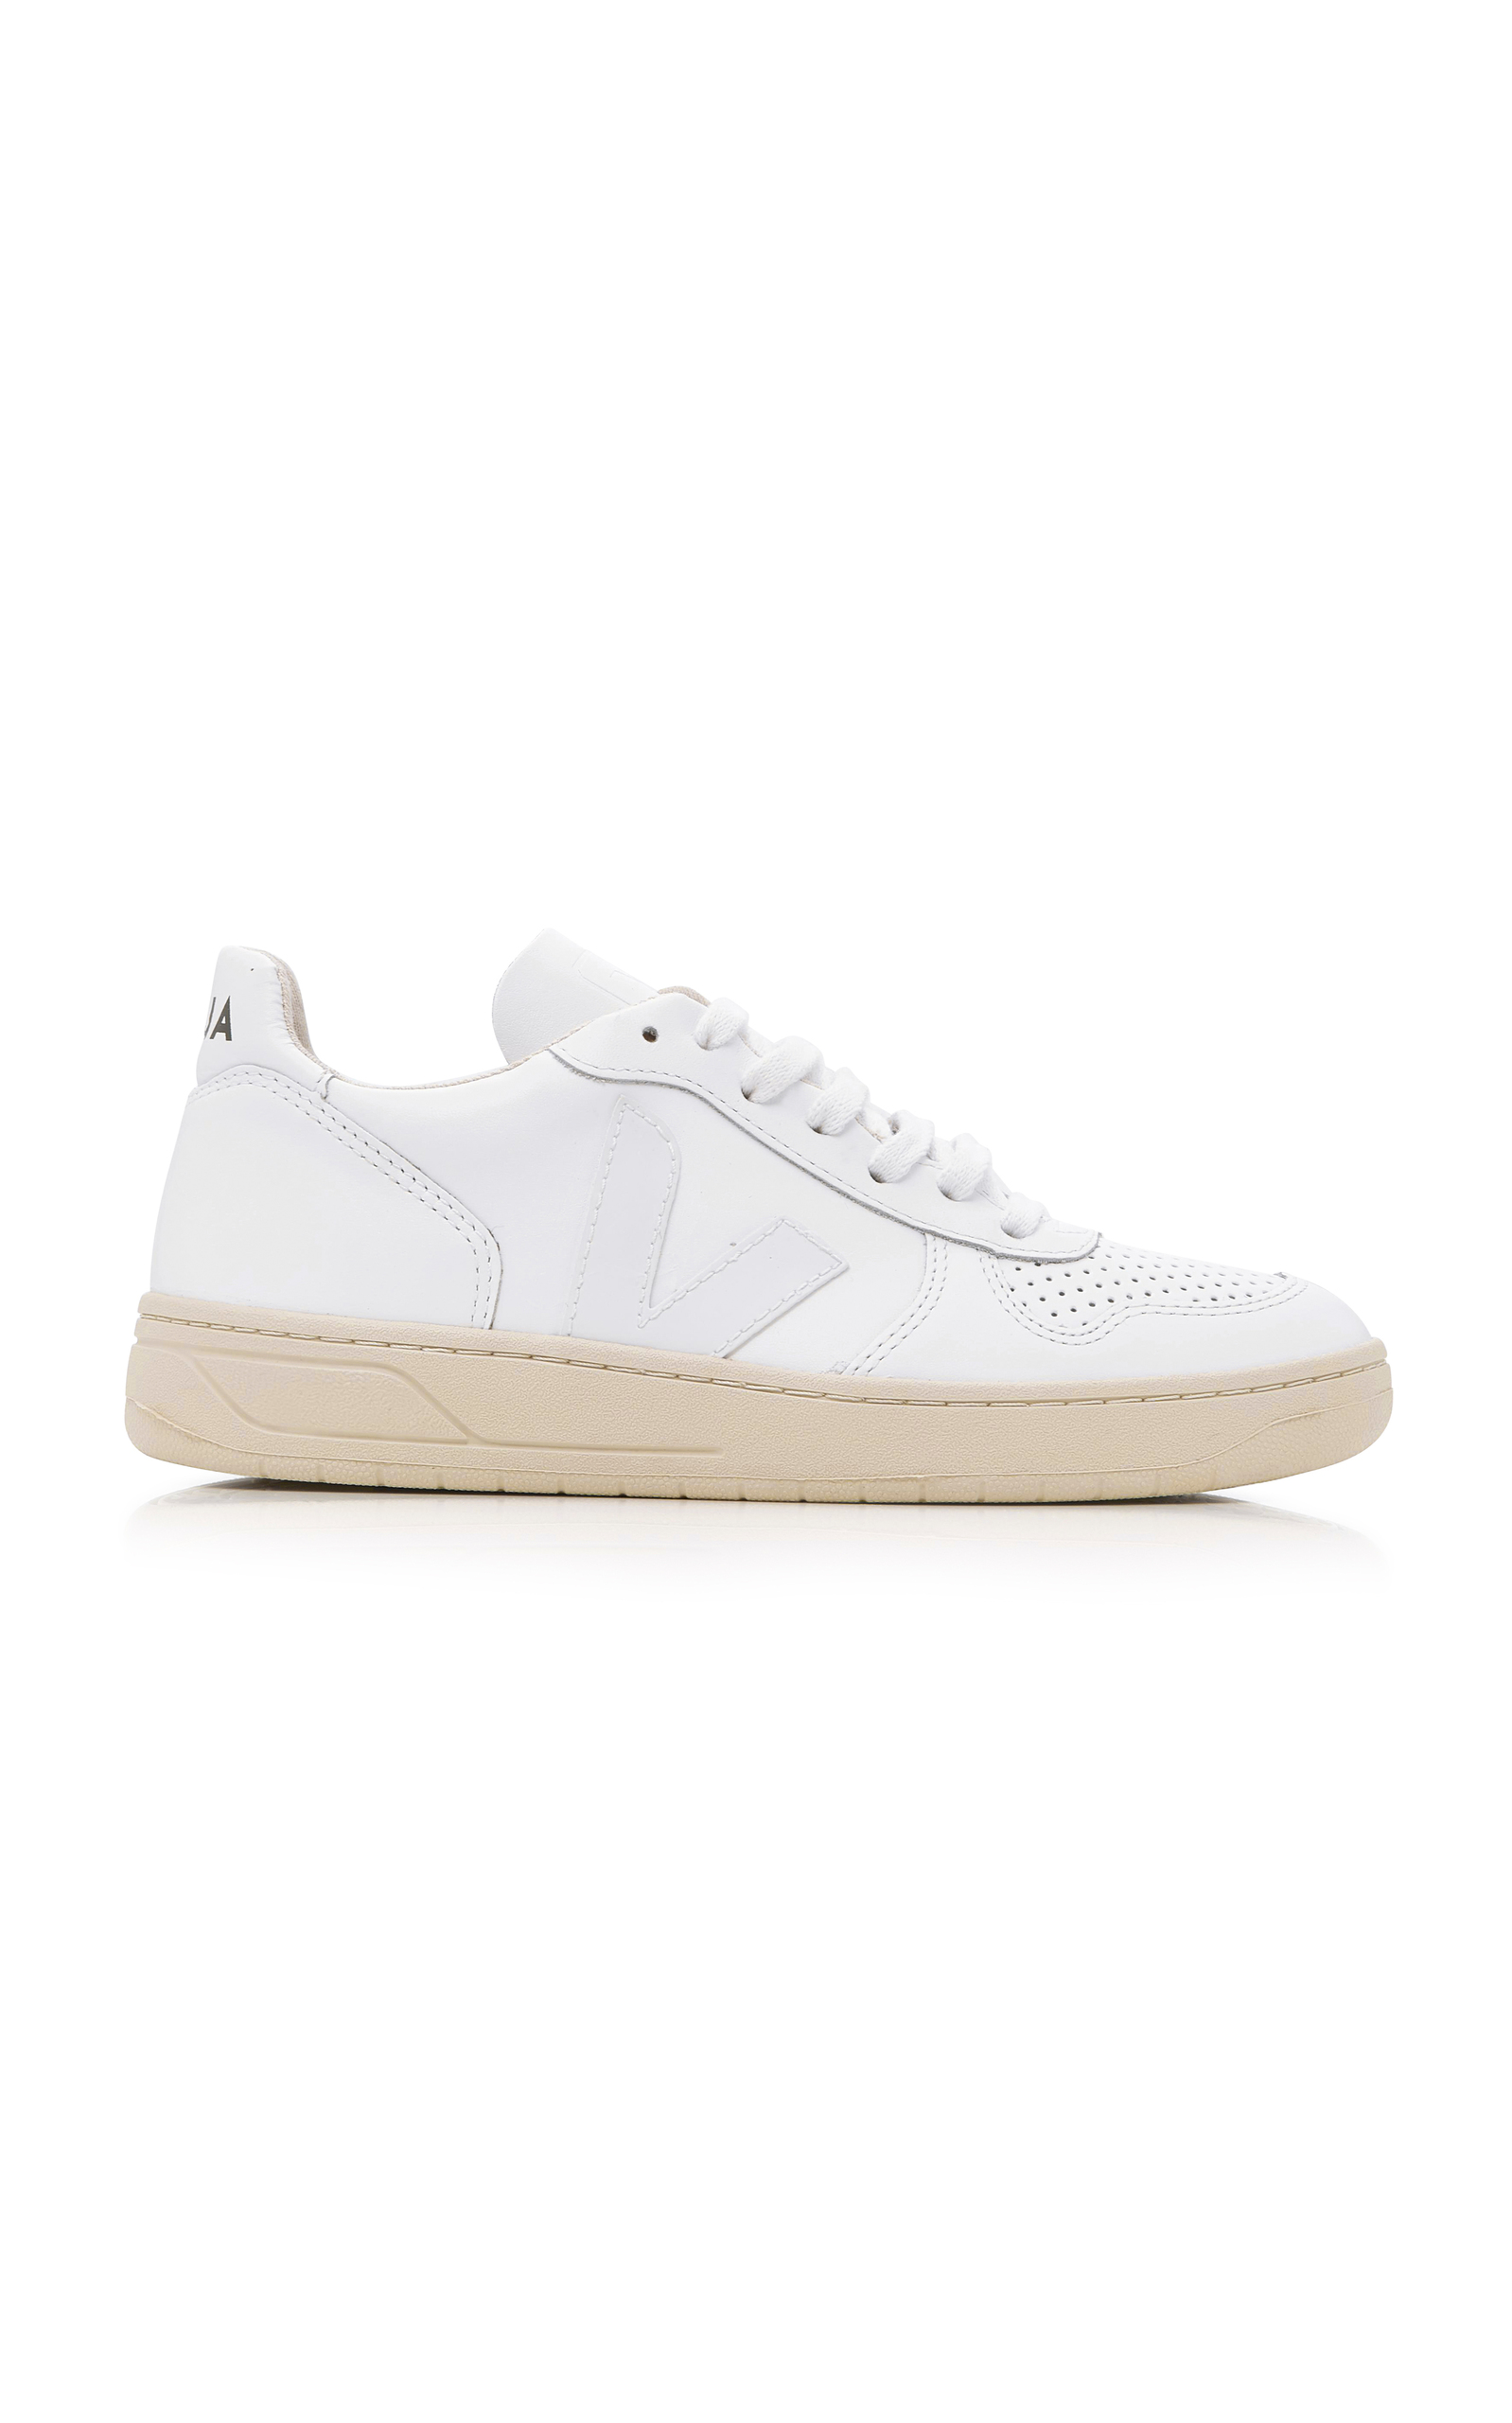 754715a813f82 V10 White Leather Sneakers